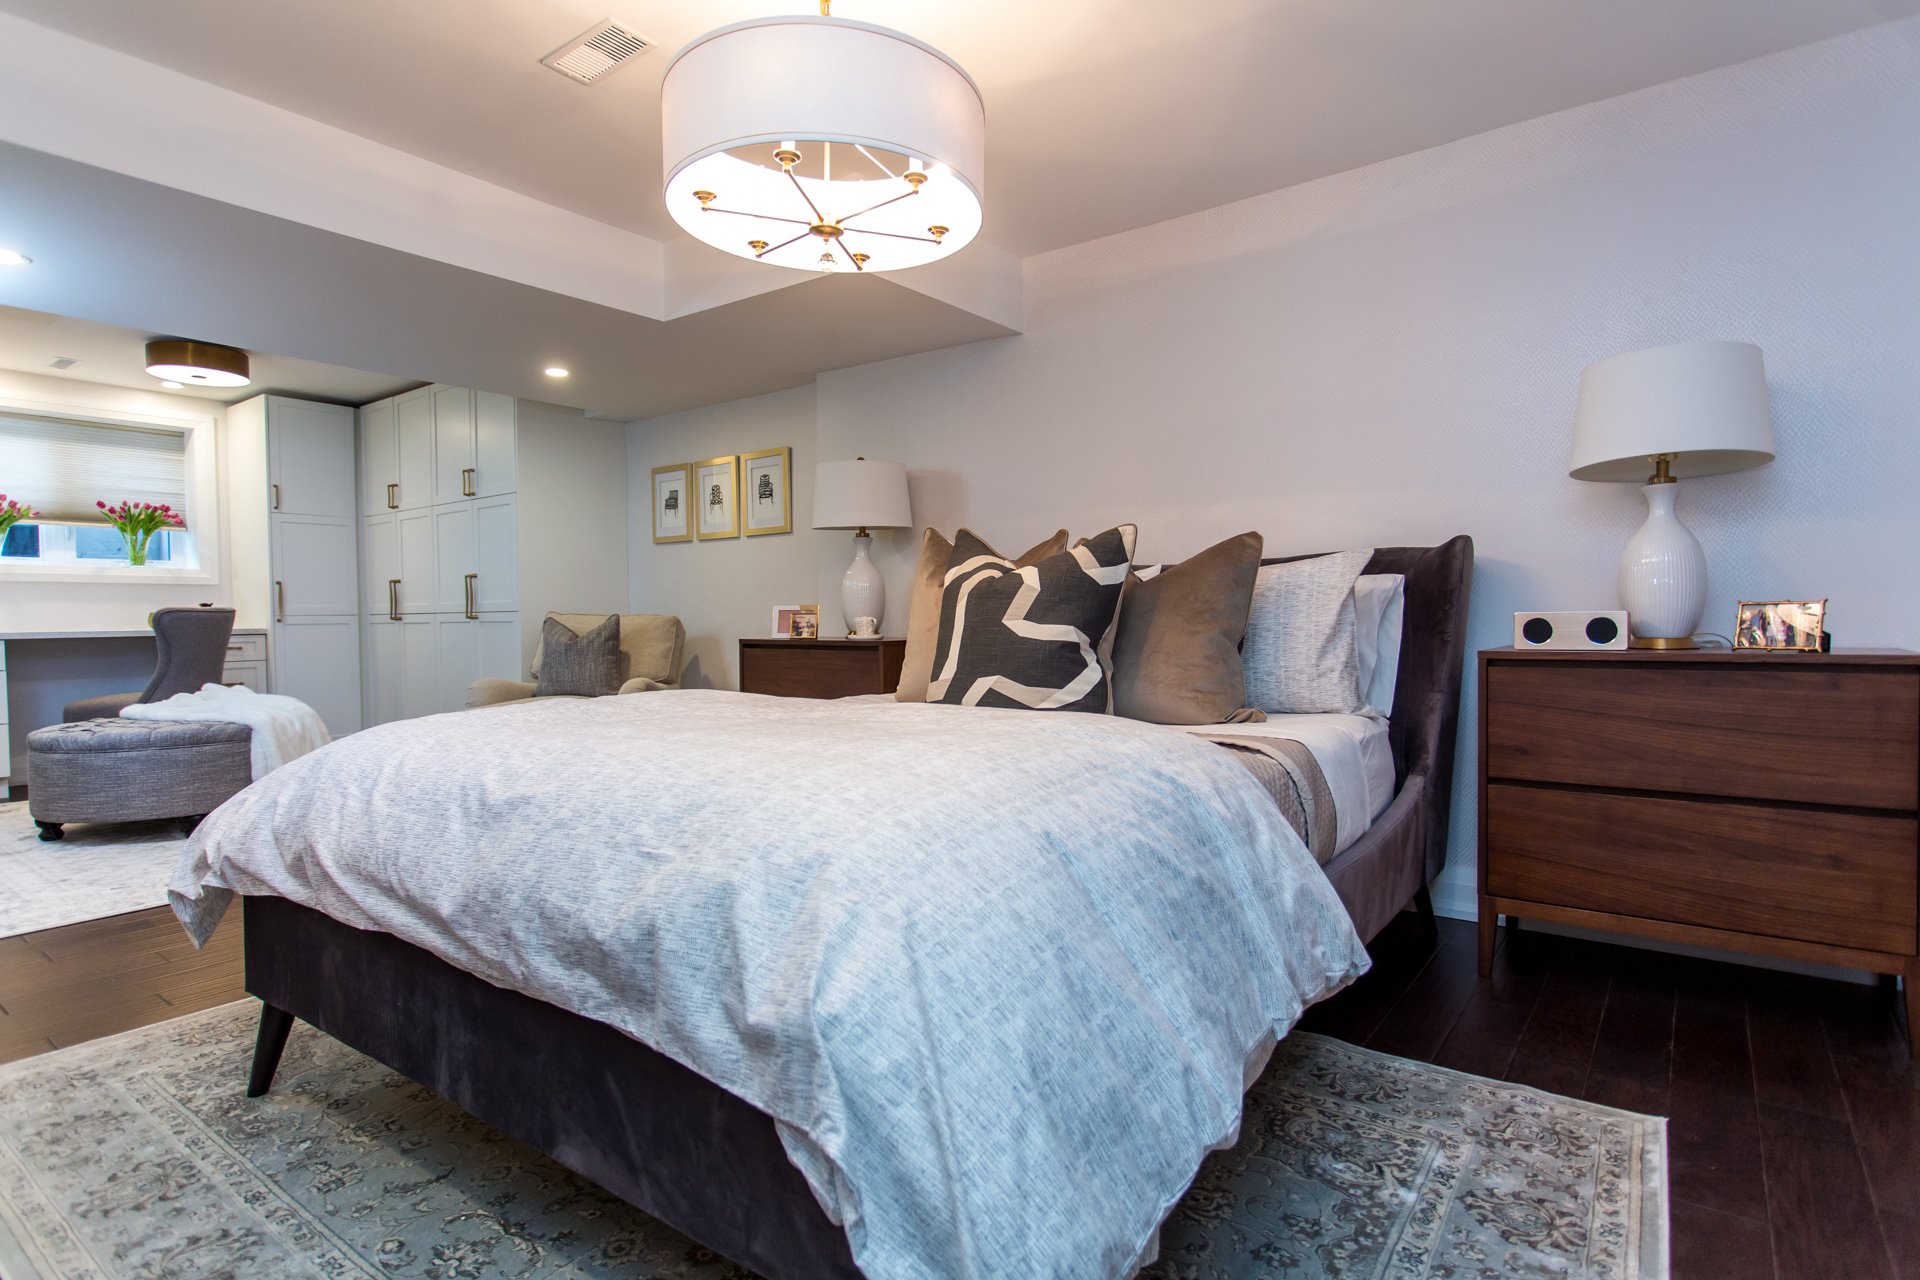 Metrie's interior finishings are incorporated into this calming bedroom on Bryan Inc.